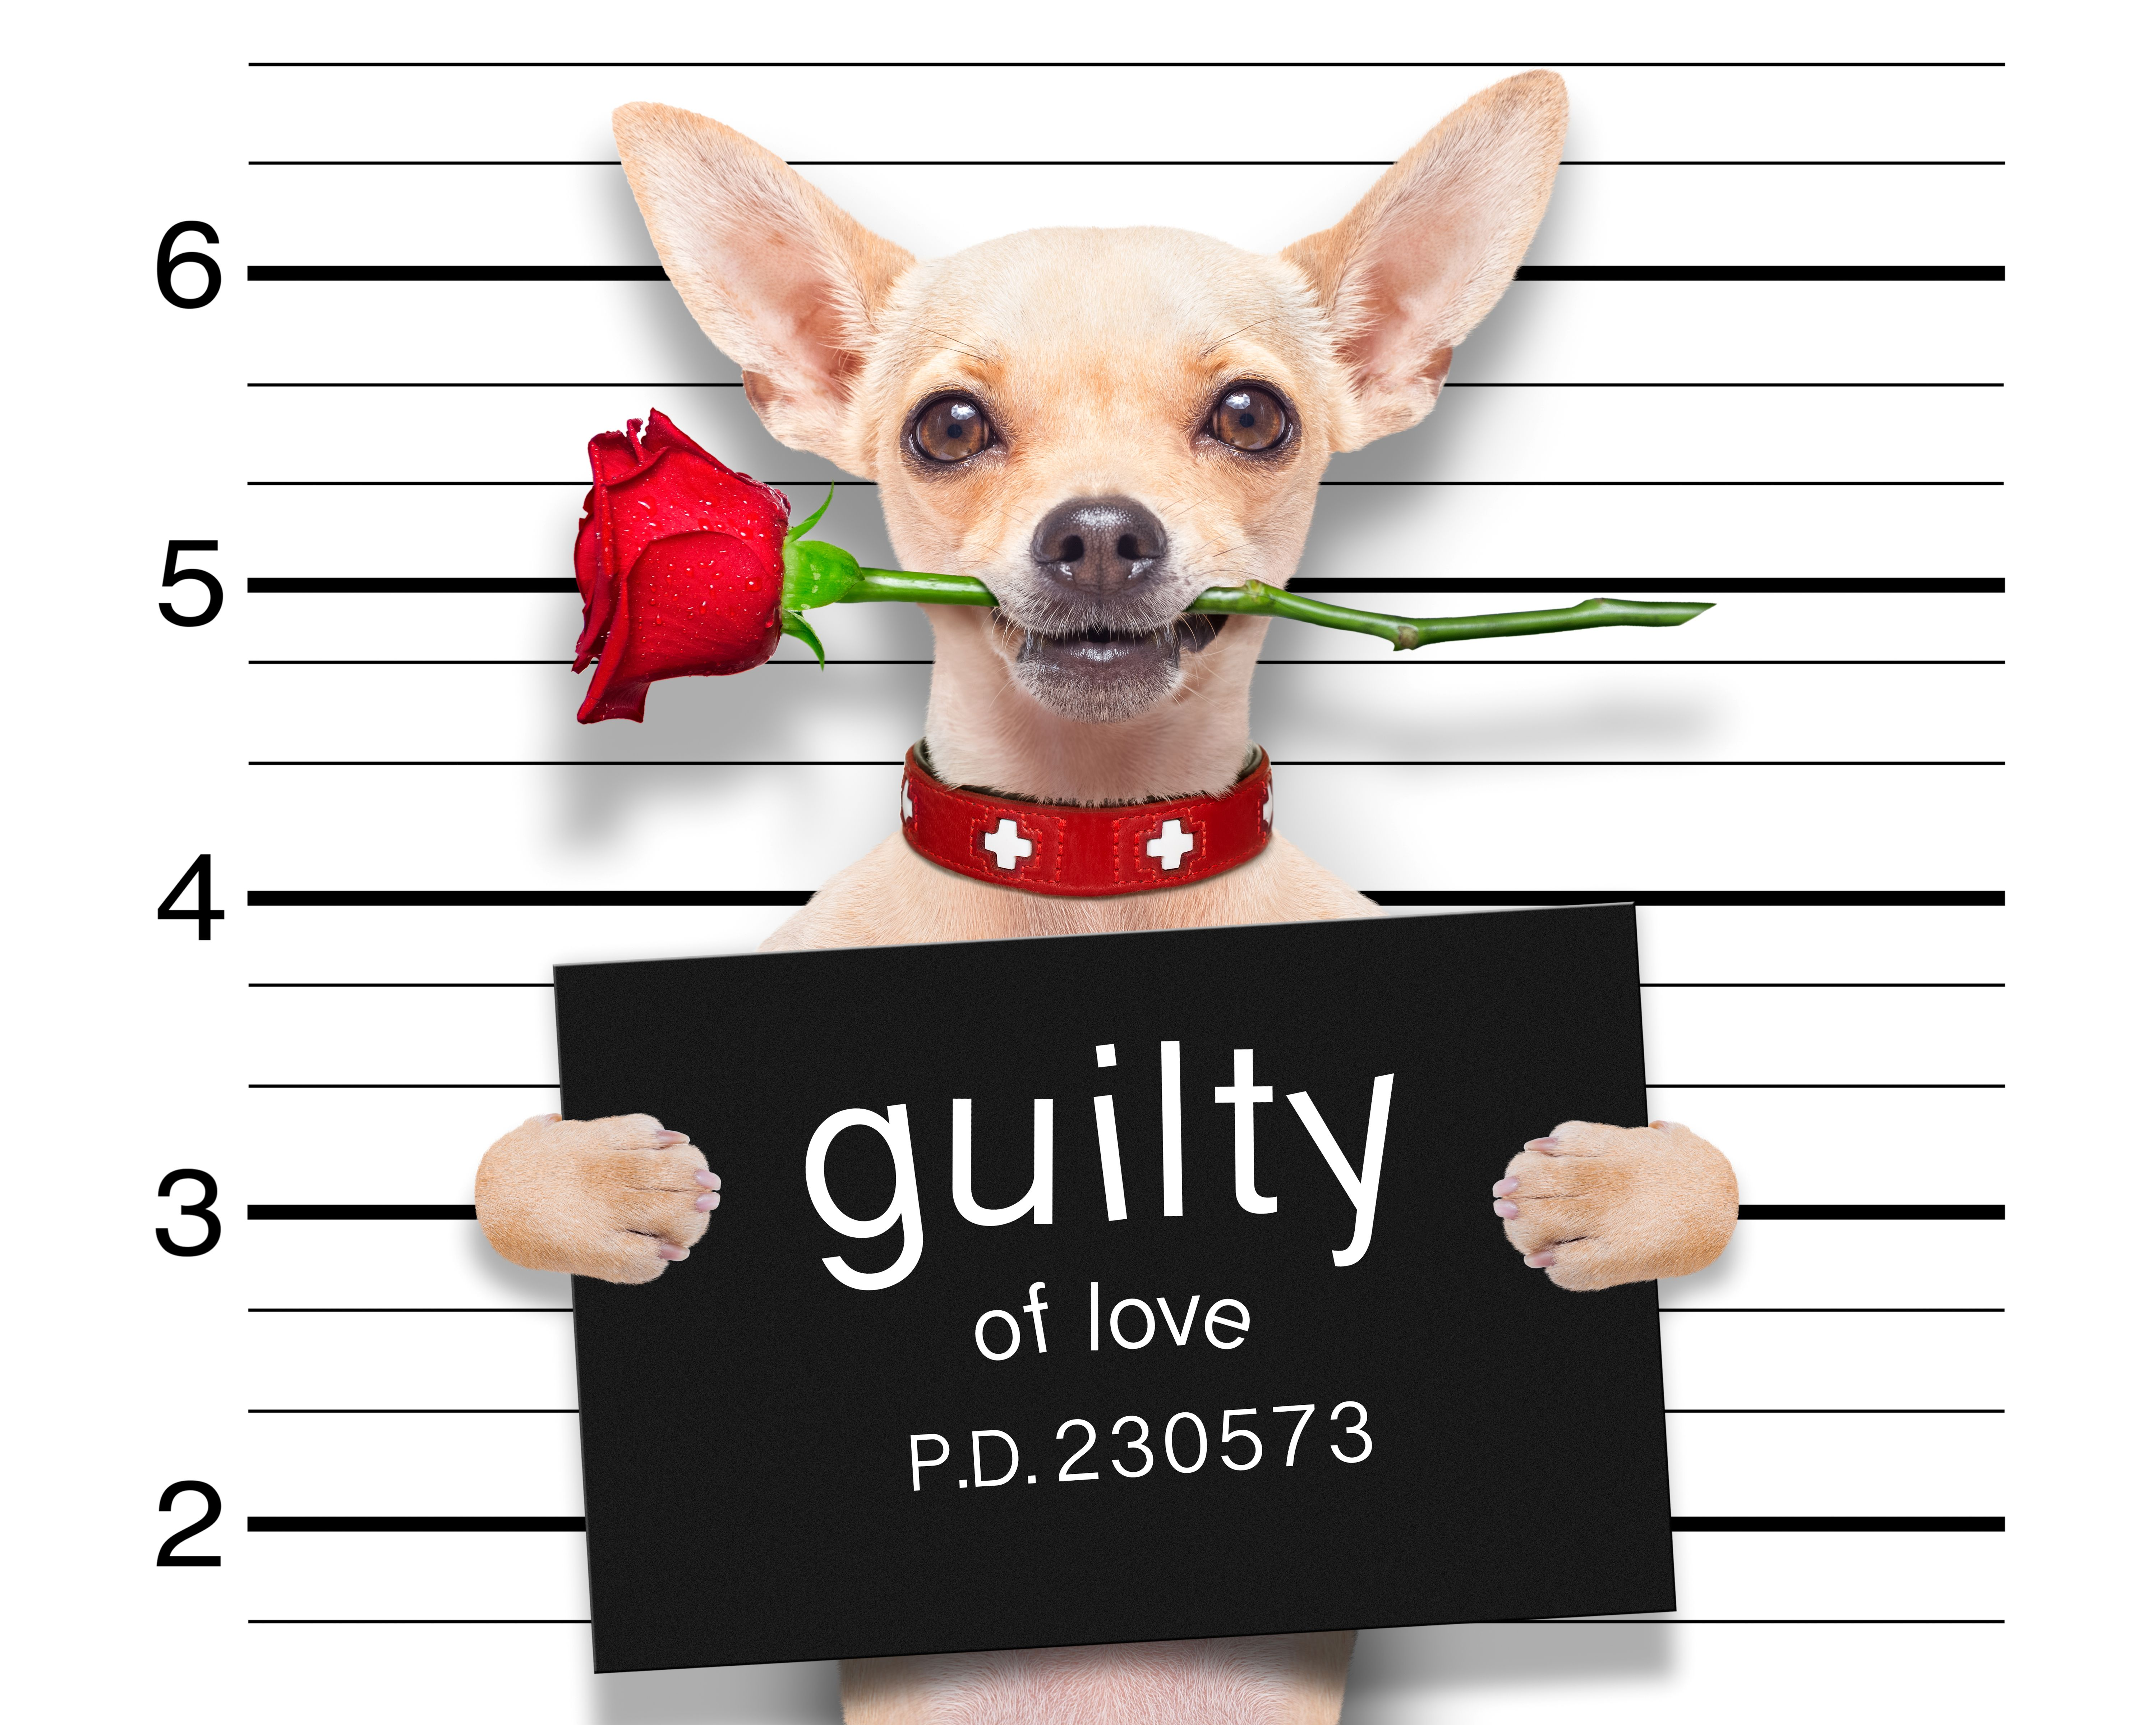 6000x4800 Picture Chihuahua Dogs English Funny Red Roses Animals 6000x4800